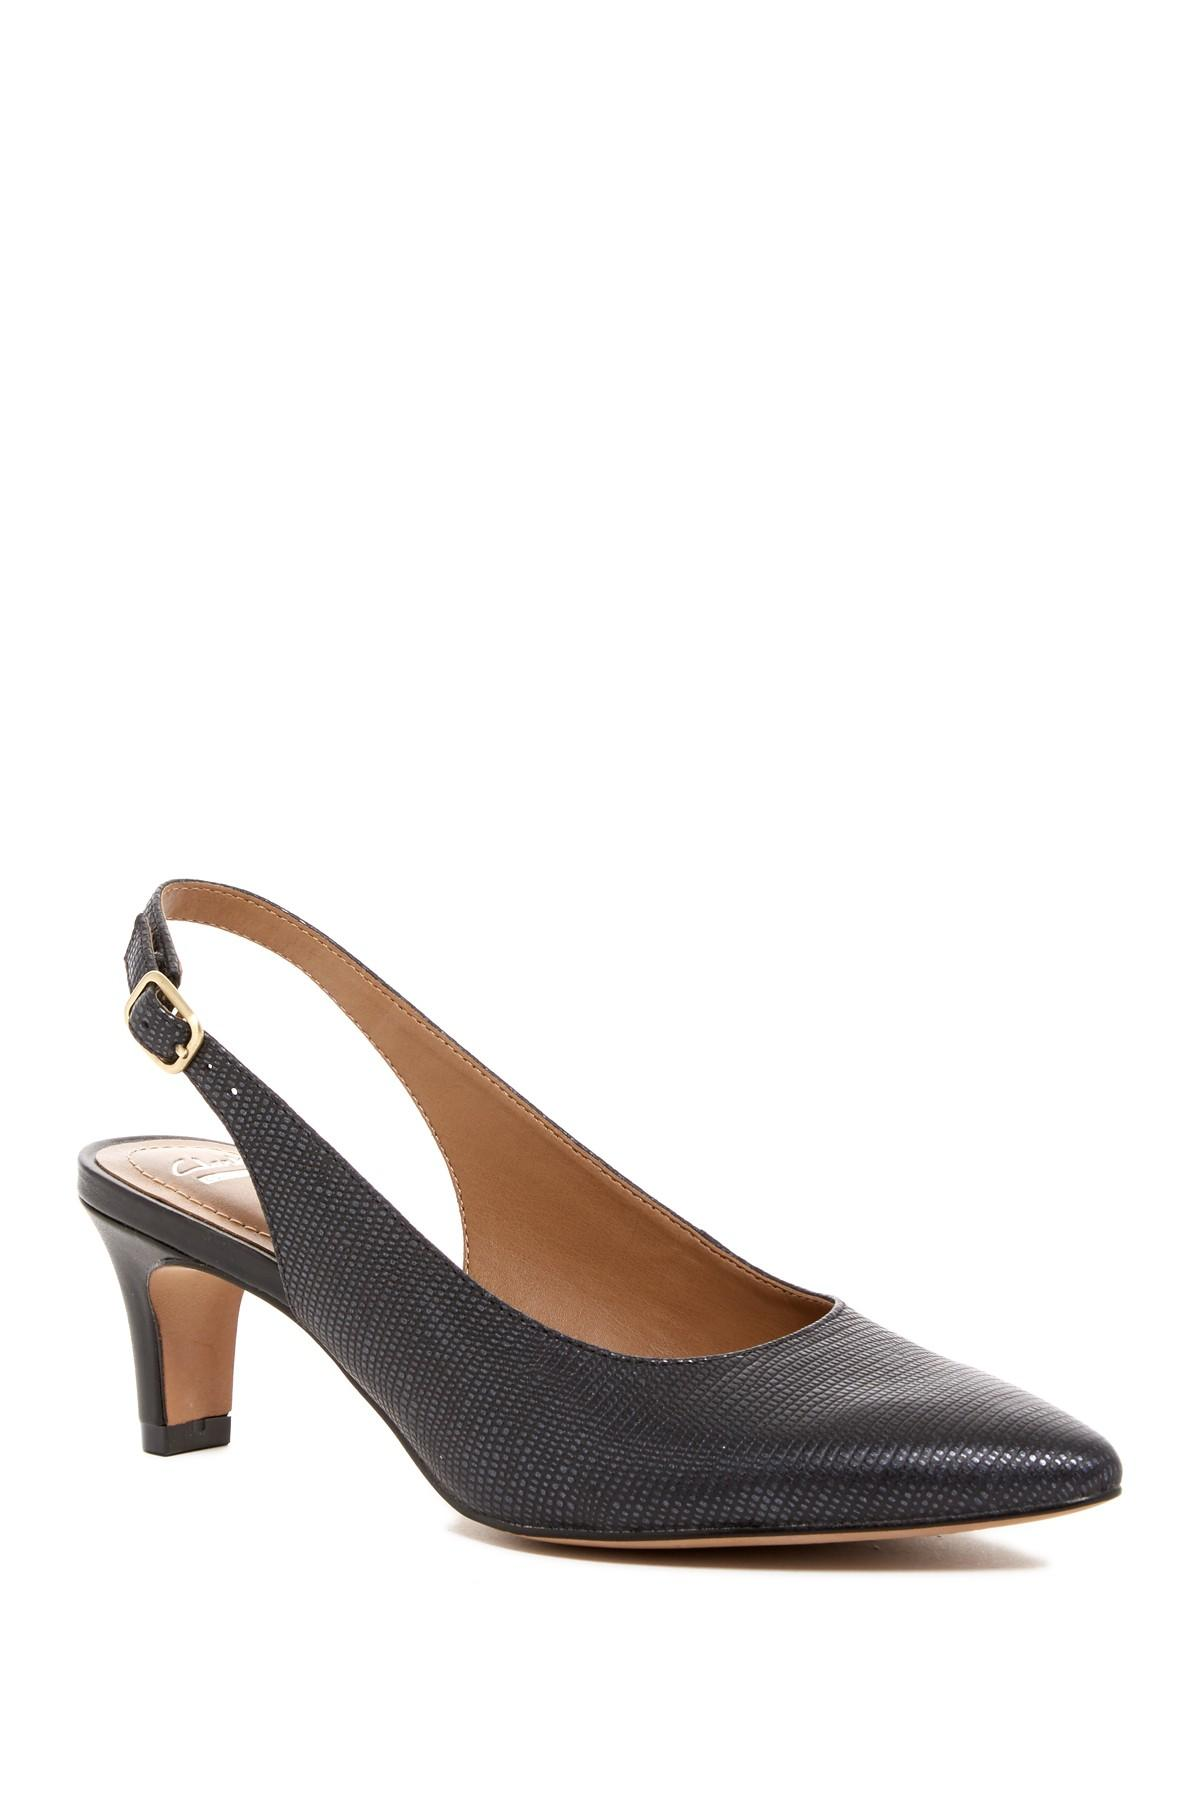 Clarks Crewso Riley Slingback Pump Wide Width Available